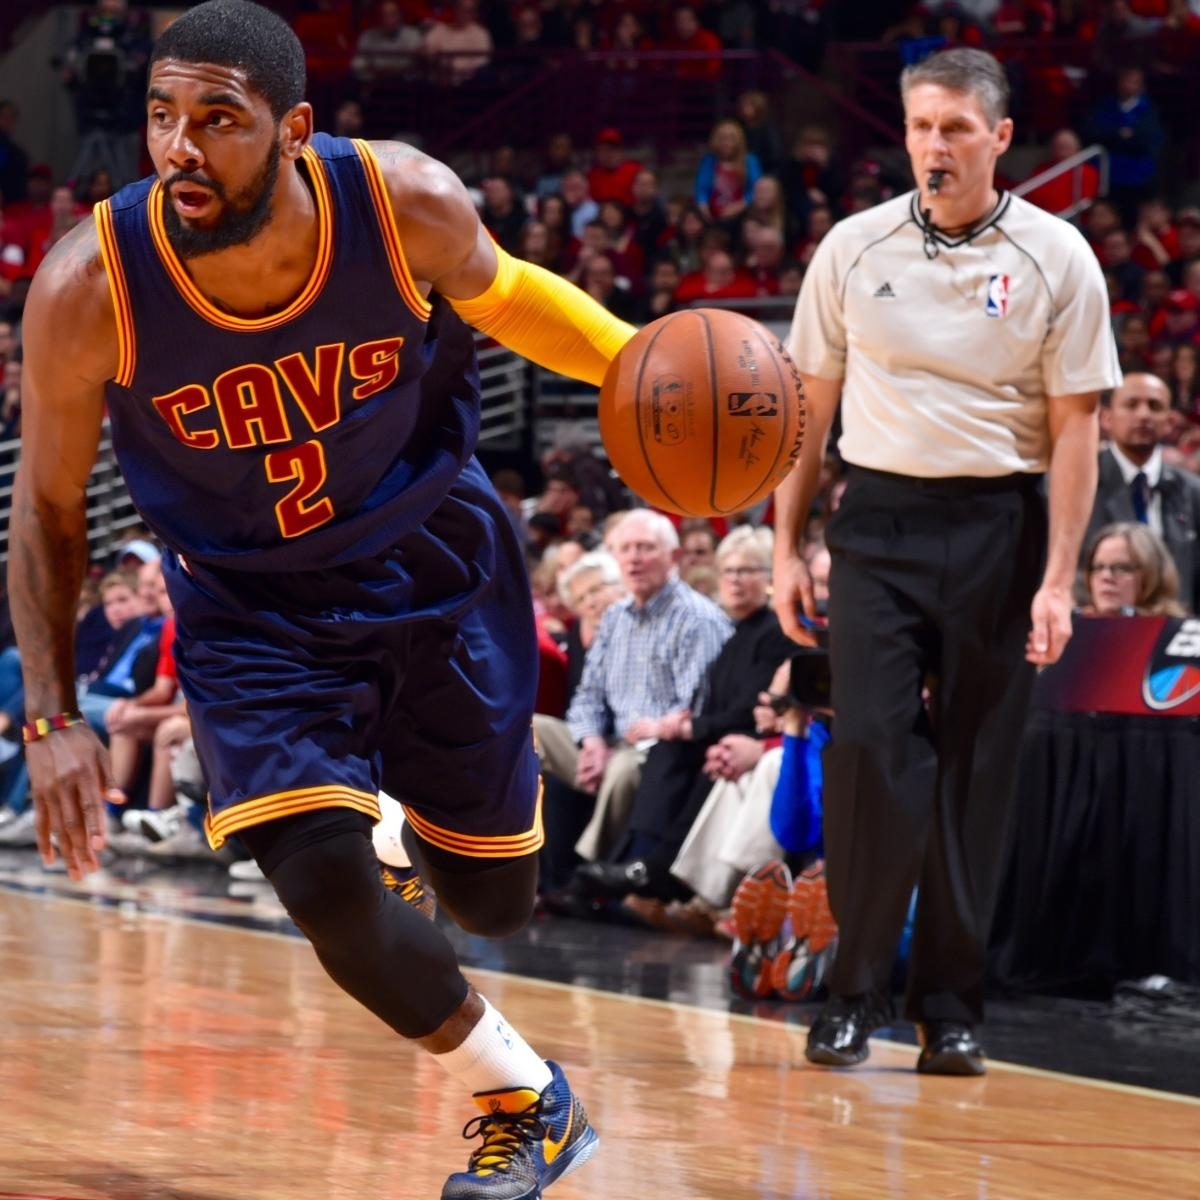 81c04dc1bf3 Kyrie Irving Injury  Updates on Cavaliers Star s Knee and Recovery ...